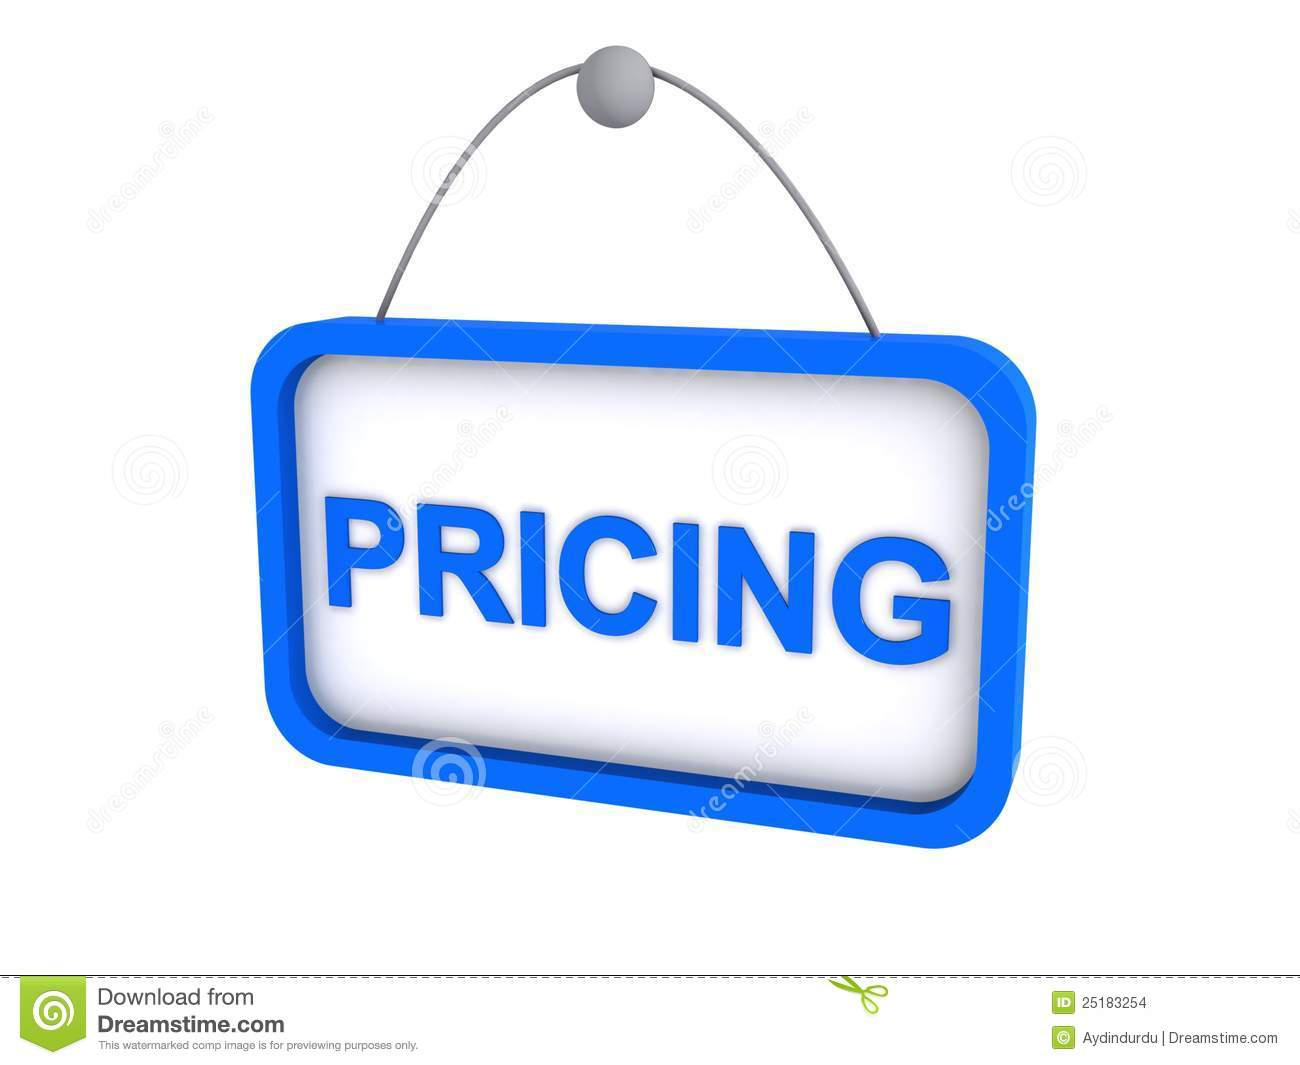 Blue 3D pricing sign illustration isolated against a white background.